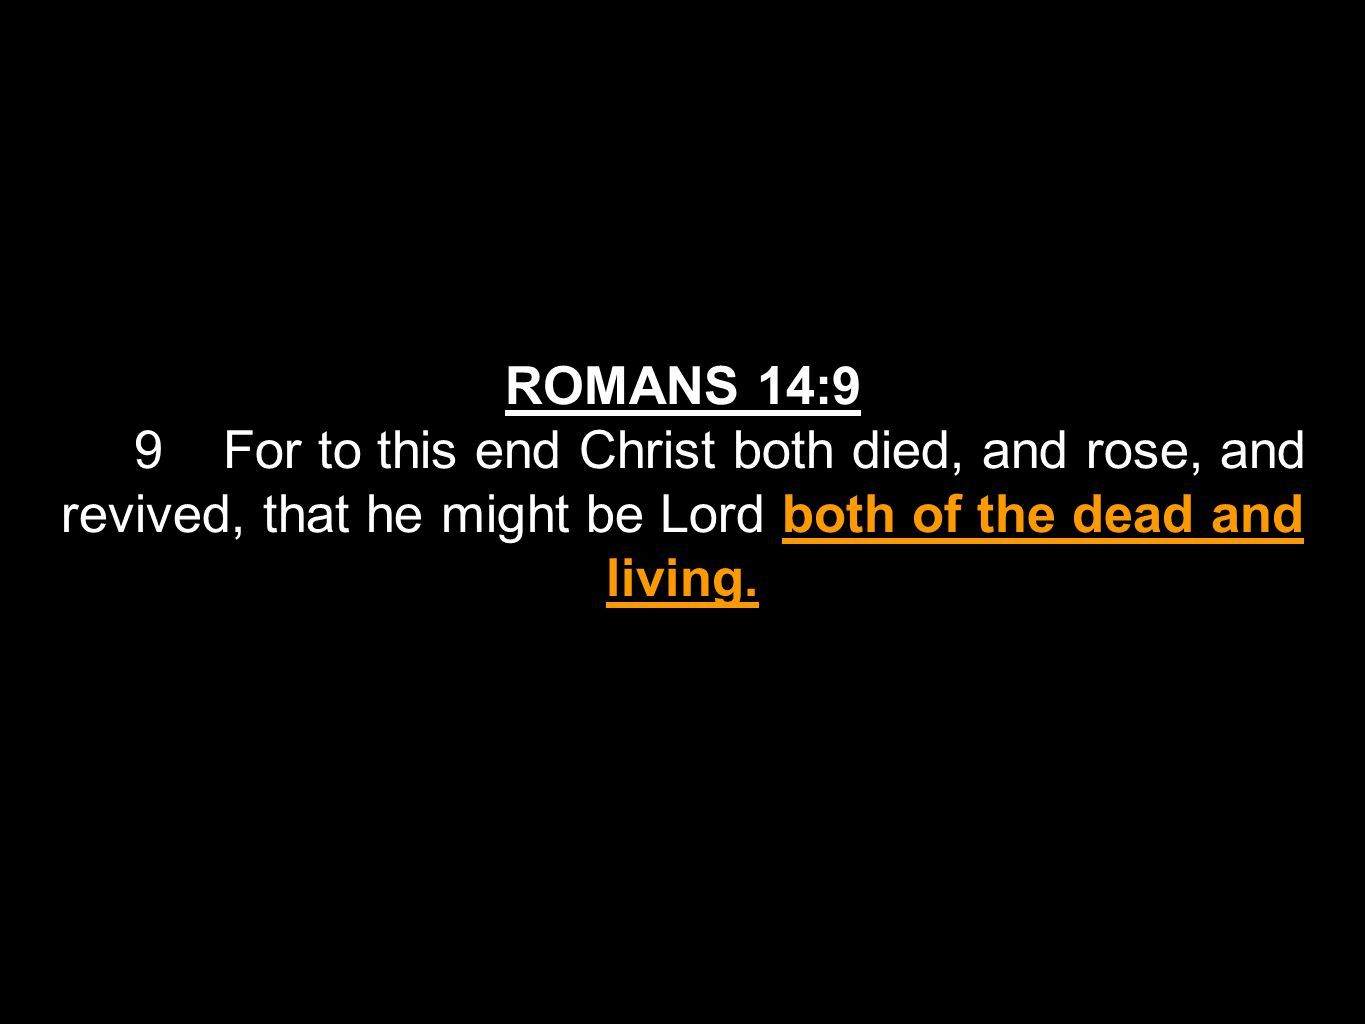 ROMANS 14:9 9 For to this end Christ both died, and rose, and revived, that he might be Lord both of the dead and living.